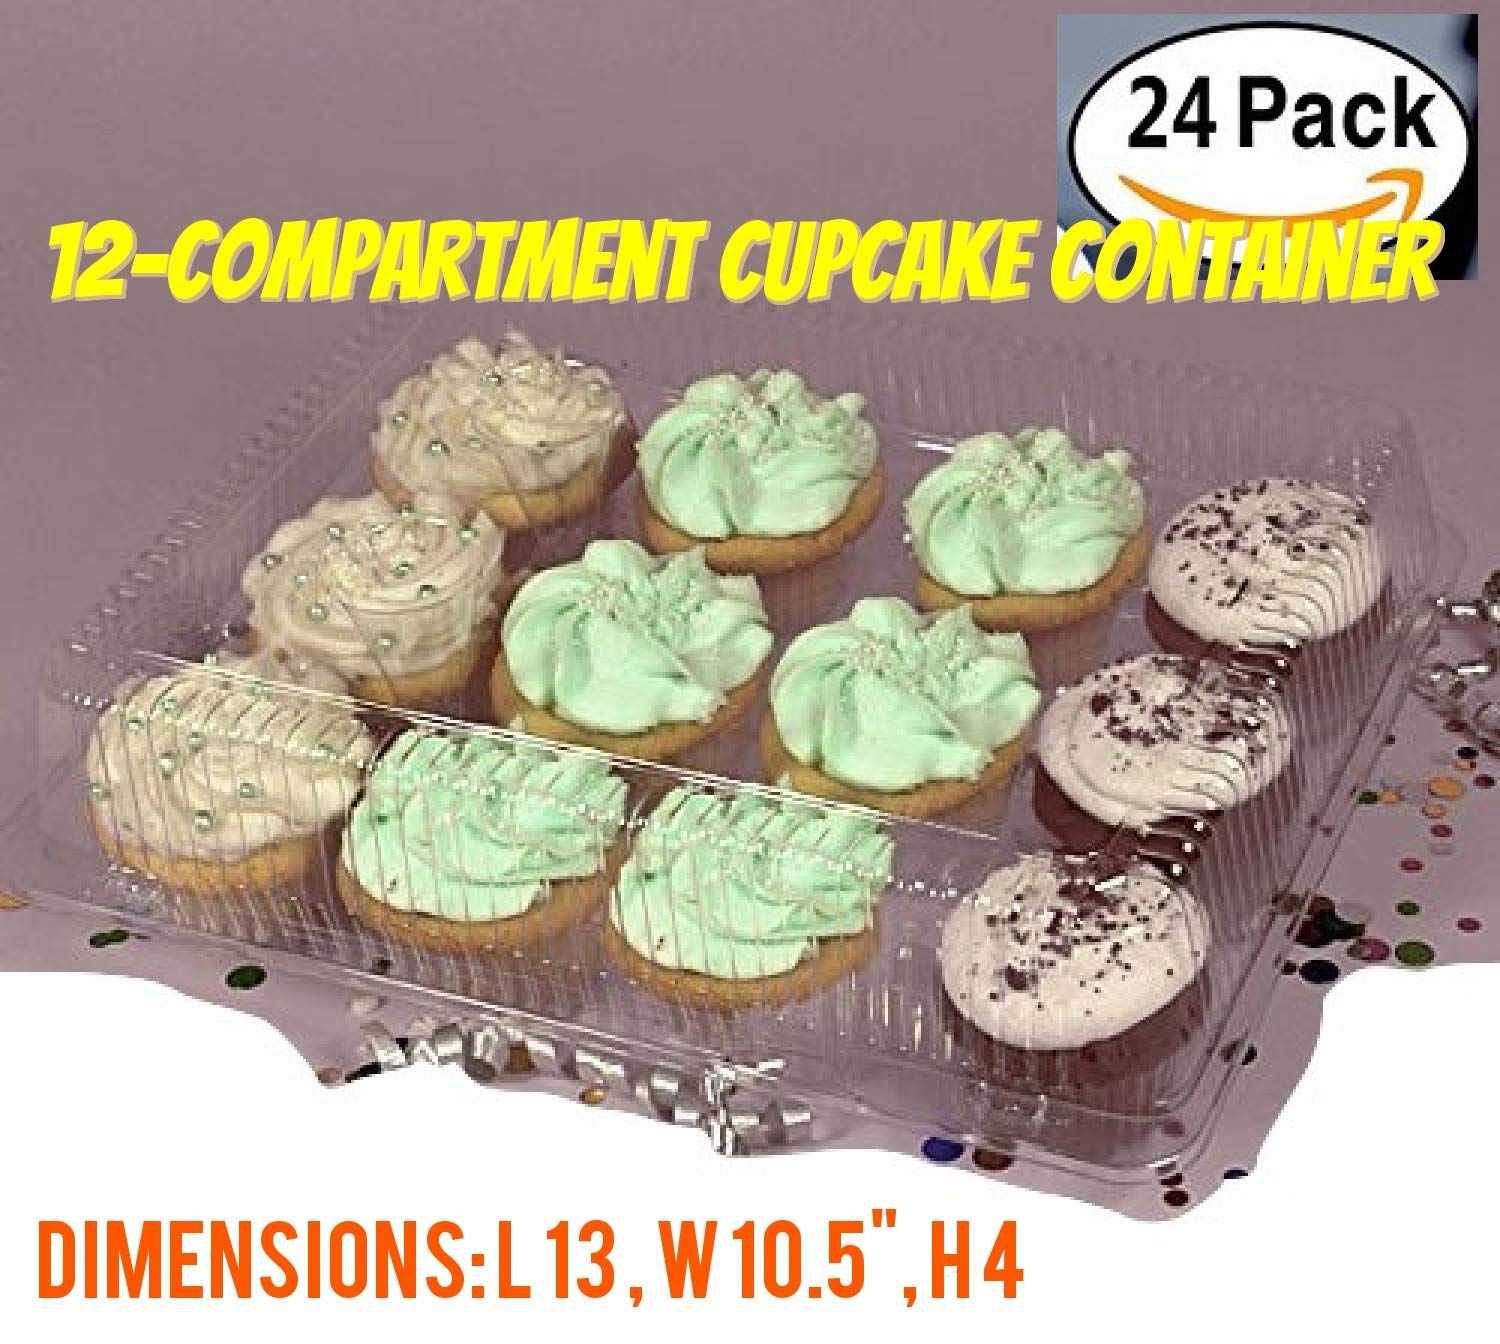 6 Compartment Cupcake boxes 6 Compartment cupcake Containers Holds 6 Cupcakes Each 6 Pack Cupcake Container 4